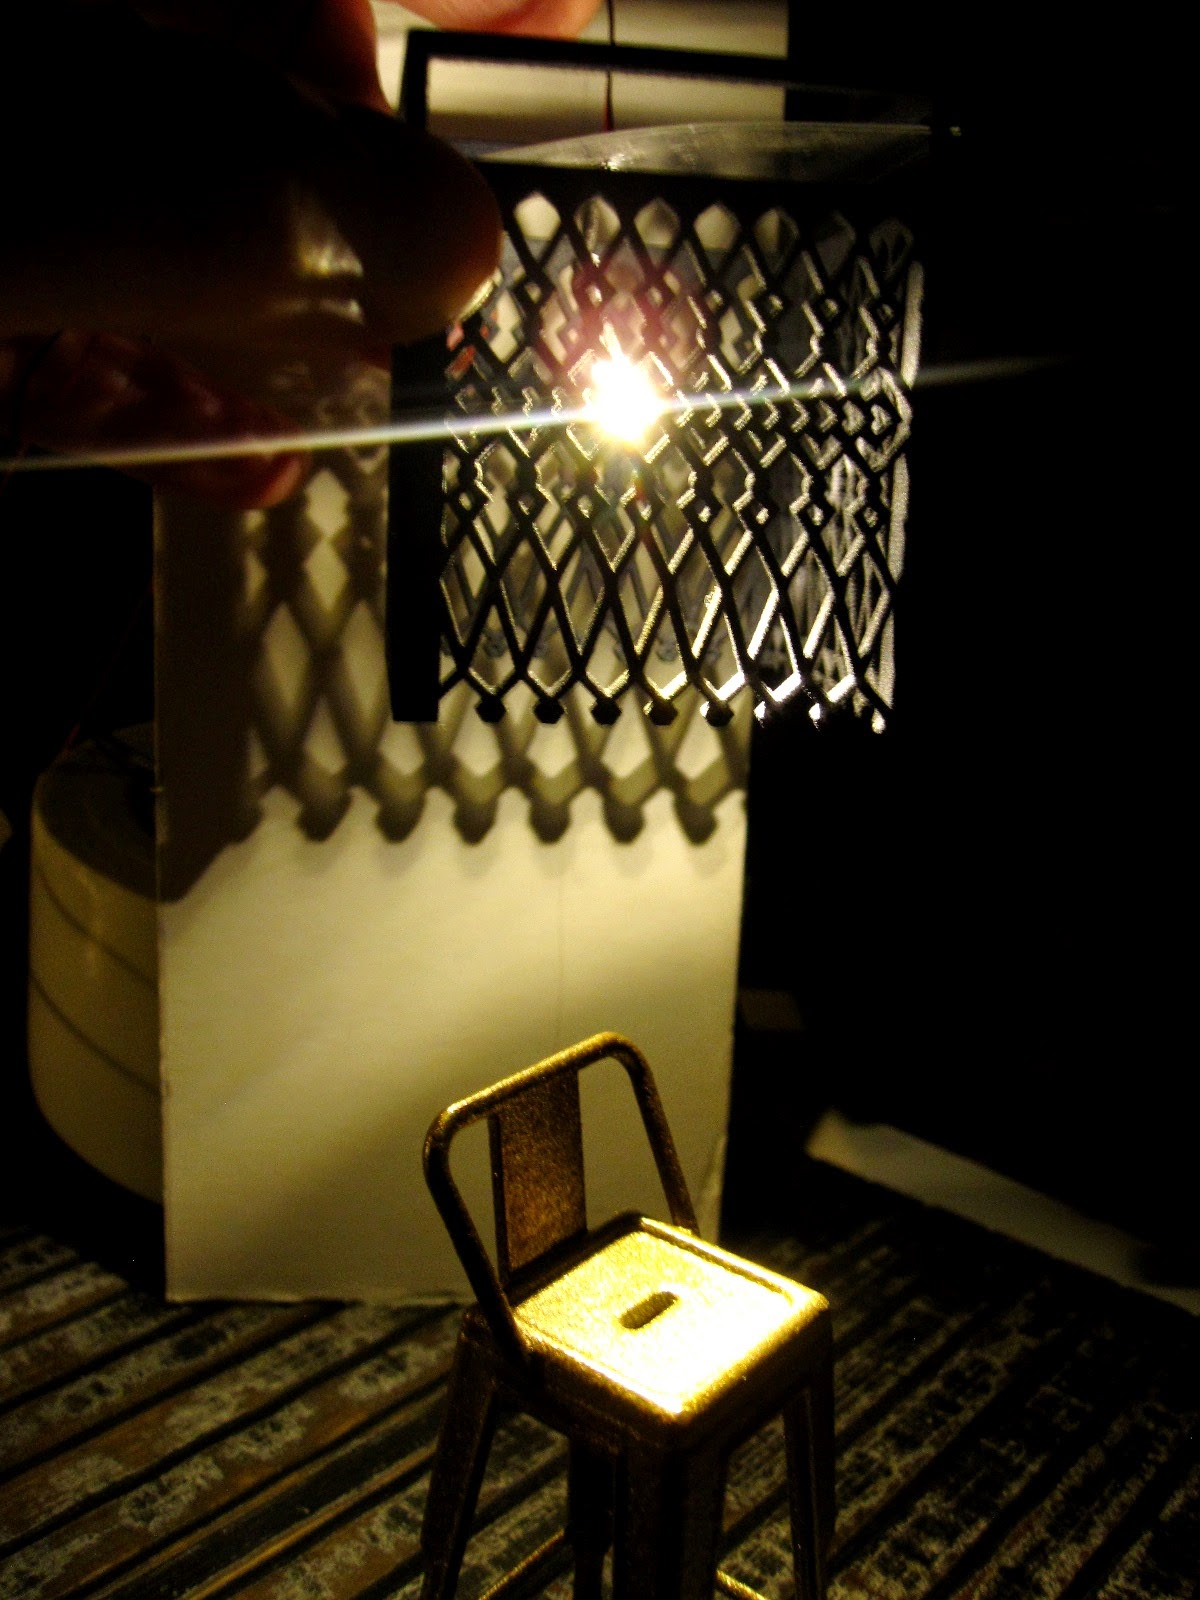 Modern dolls' house miniature scene in progress, with a copper-coloured cafe bar stool in the dark with a geometric-design light shade above, casting patterns on the wall.